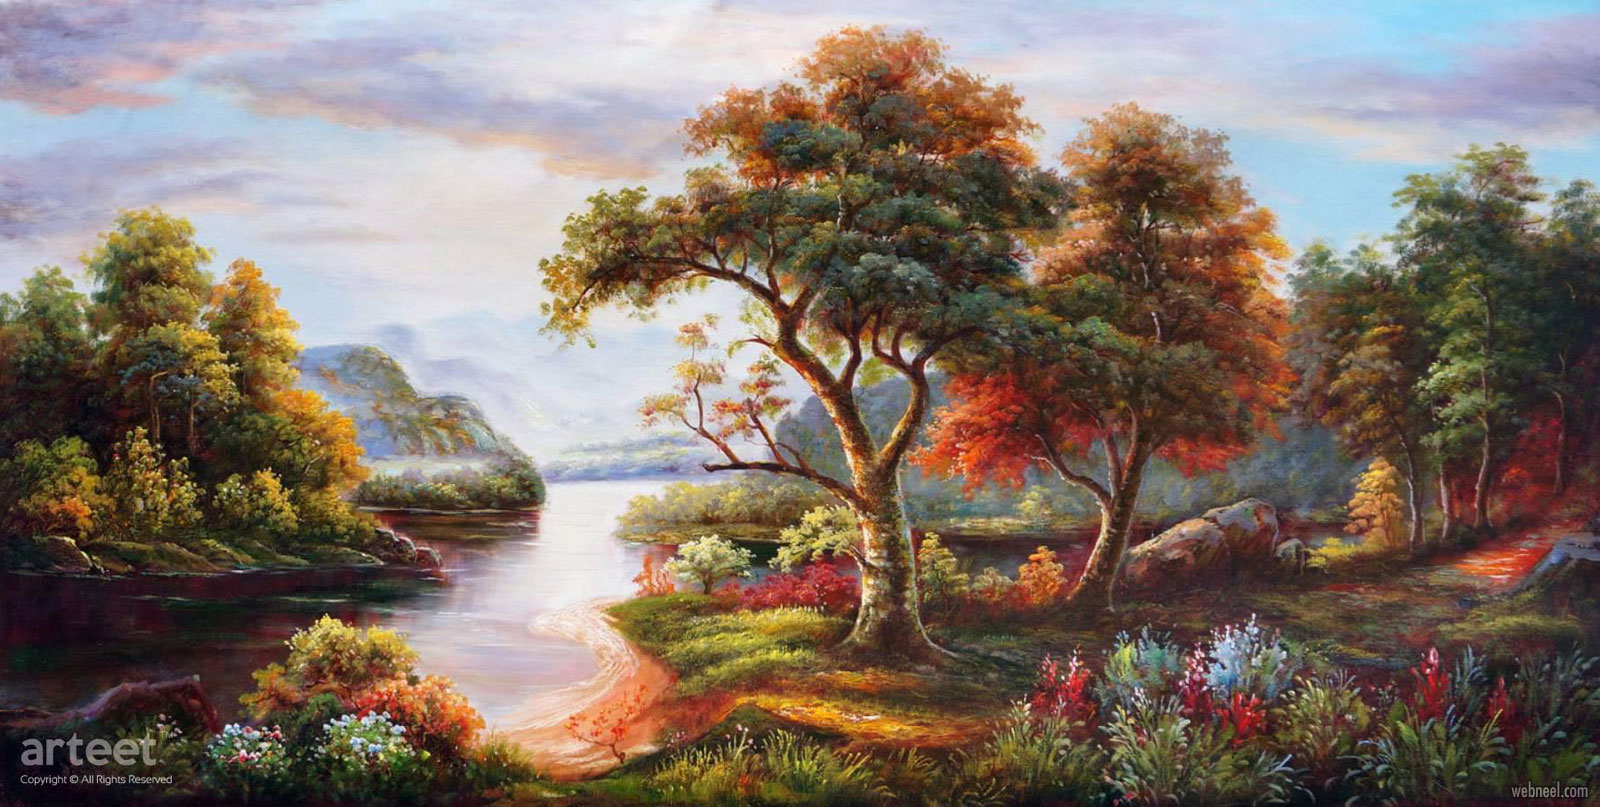 landscape artwork oil painting scenery by arteet